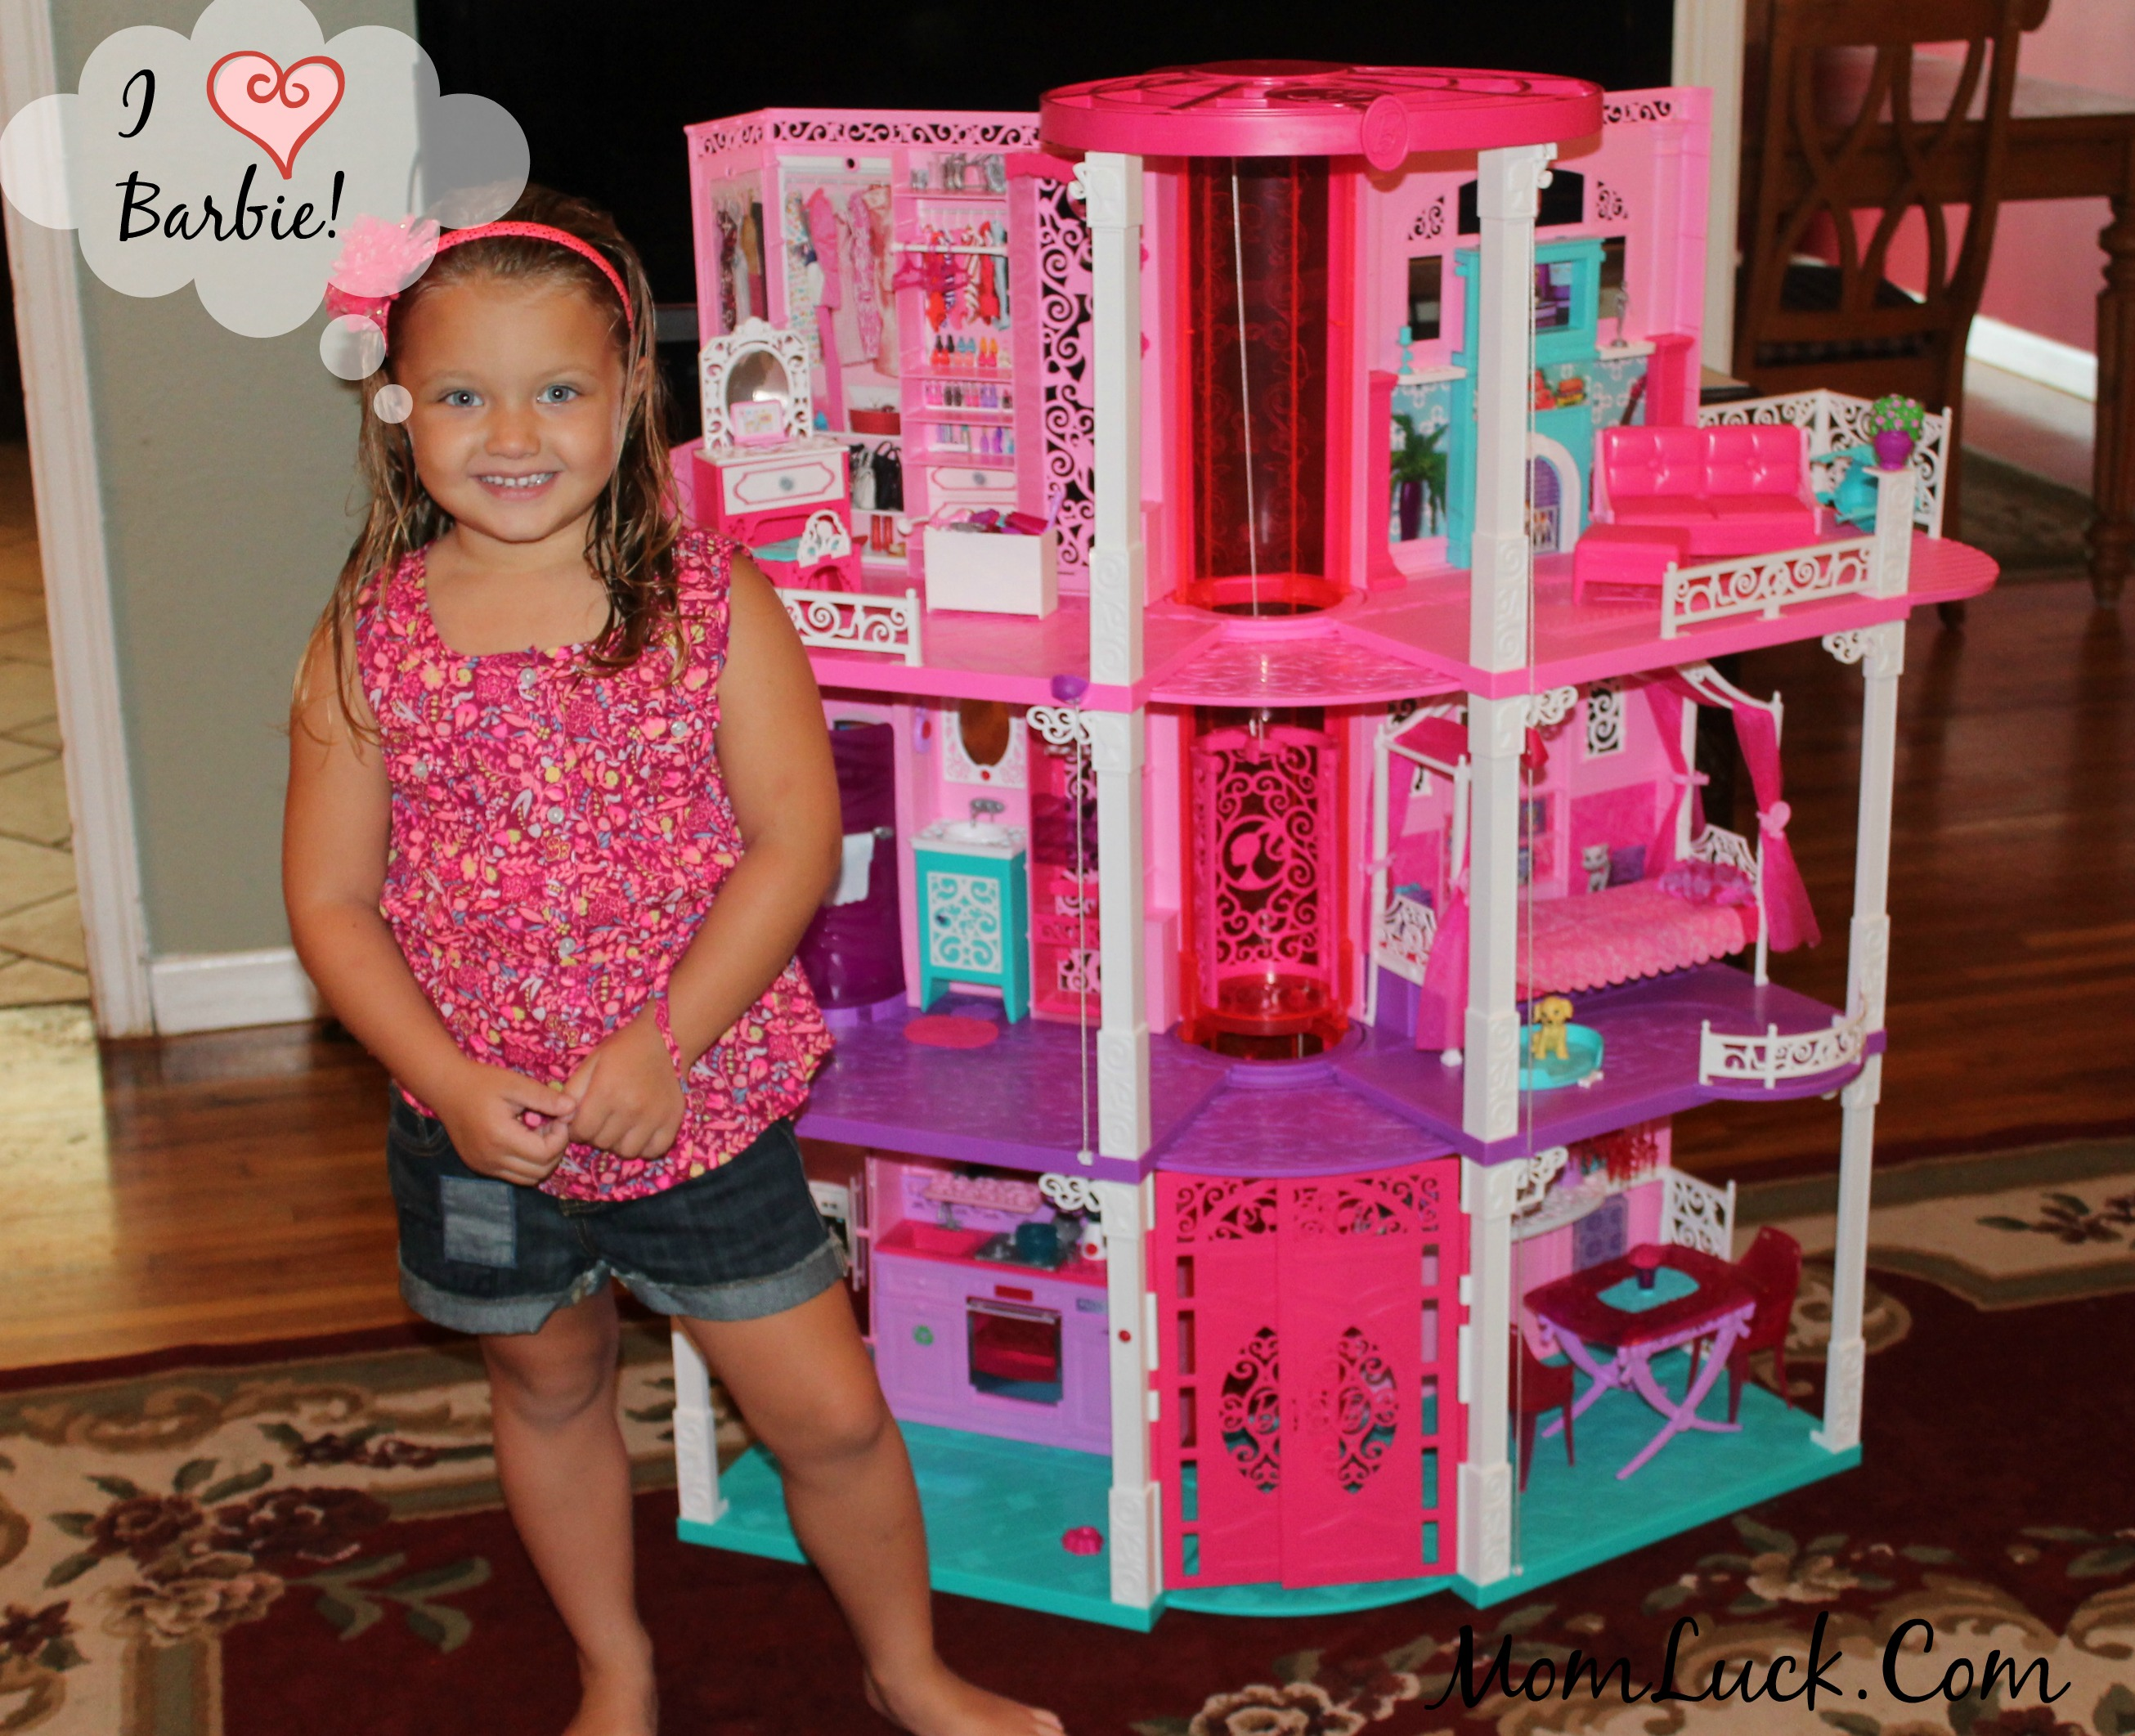 House Toys For Girls : Barbie and friends at walmart dreamhouse